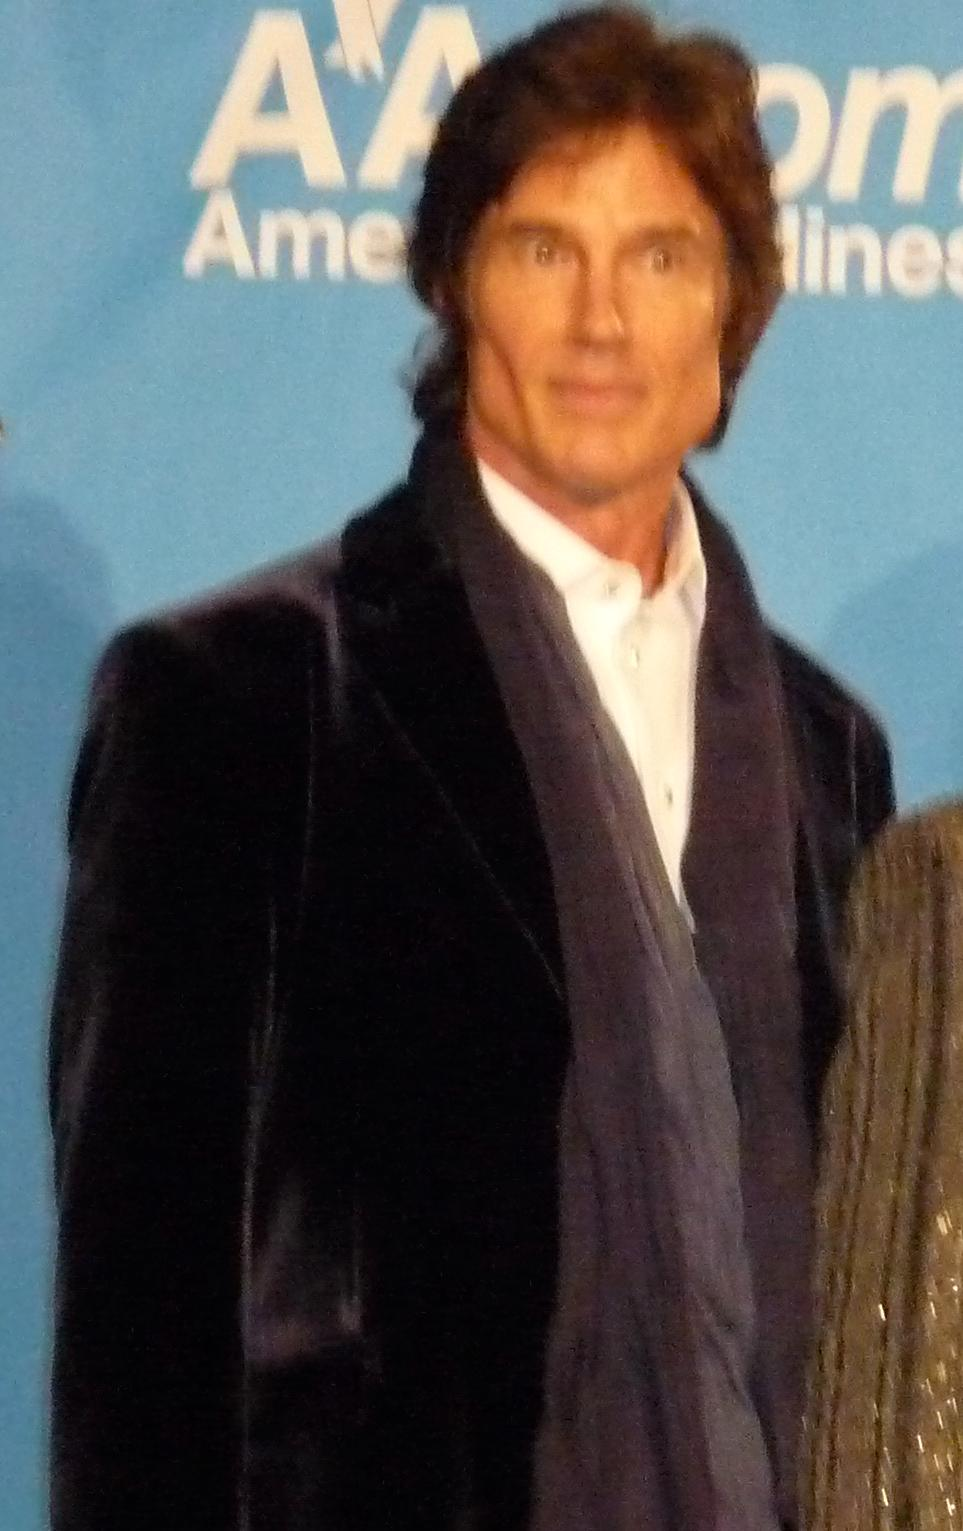 ronn moss 2015ronn moss net worth, ronn moss daughter, ronn moss bold and the beautiful, ronn moss, ronn moss wiki, ronn moss instagram, ronn moss twitter, ronn moss 2016, ronn moss imdb, ronn moss 2015, ronn moss wife, ronn moss band, ronn moss oggi, ronn moss player, ronn moss age, ronn moss lascia beautiful, ronn moss leaves bold and the beautiful, ronn moss facebook, ronn moss family, ronn moss dancing with the stars